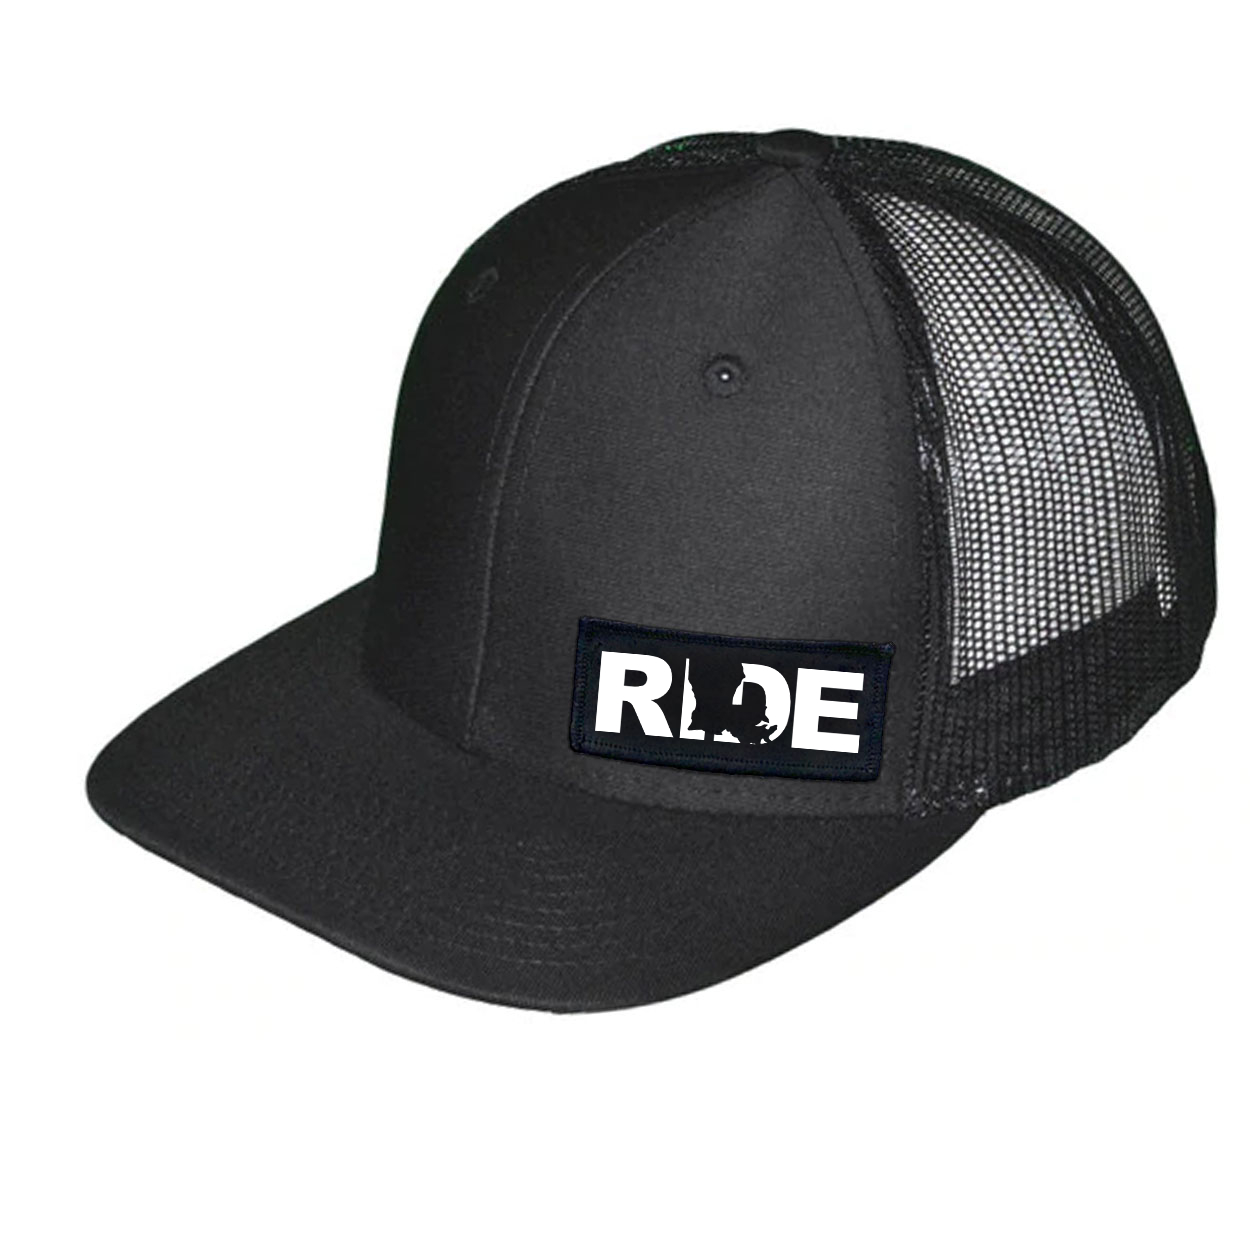 Ride Louisiana Night Out Woven Patch Snapback Trucker Hat Black (White Logo)